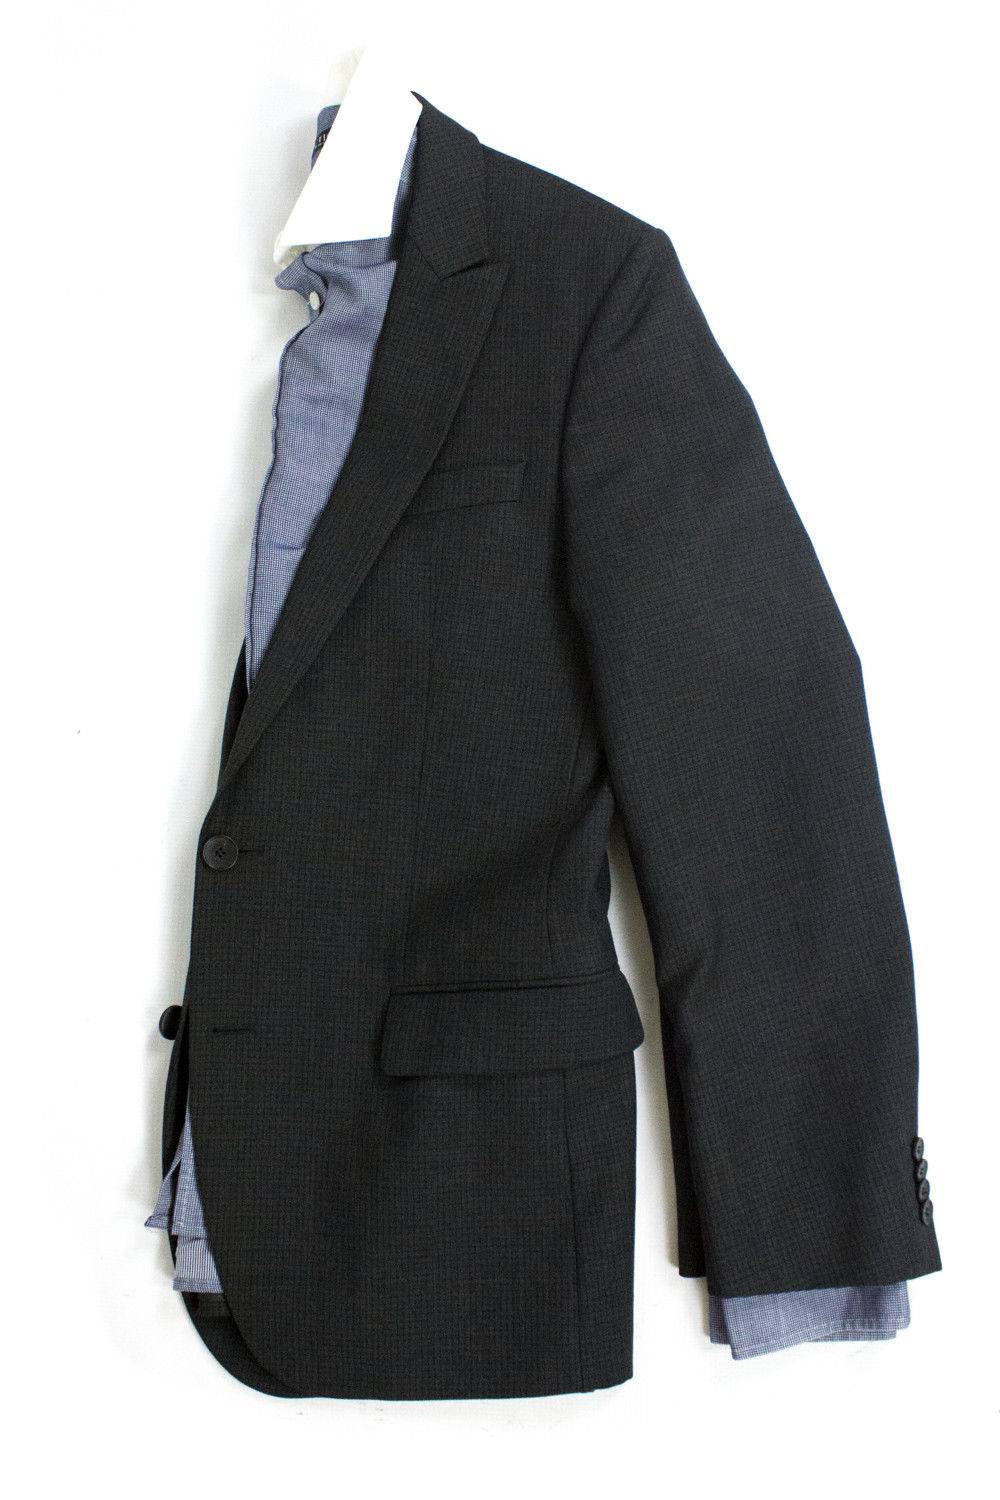 HUGO BOSS Abous/Heise 100% Wool Gray Blazer Jacket, US 36R, EU46 - secondfirst